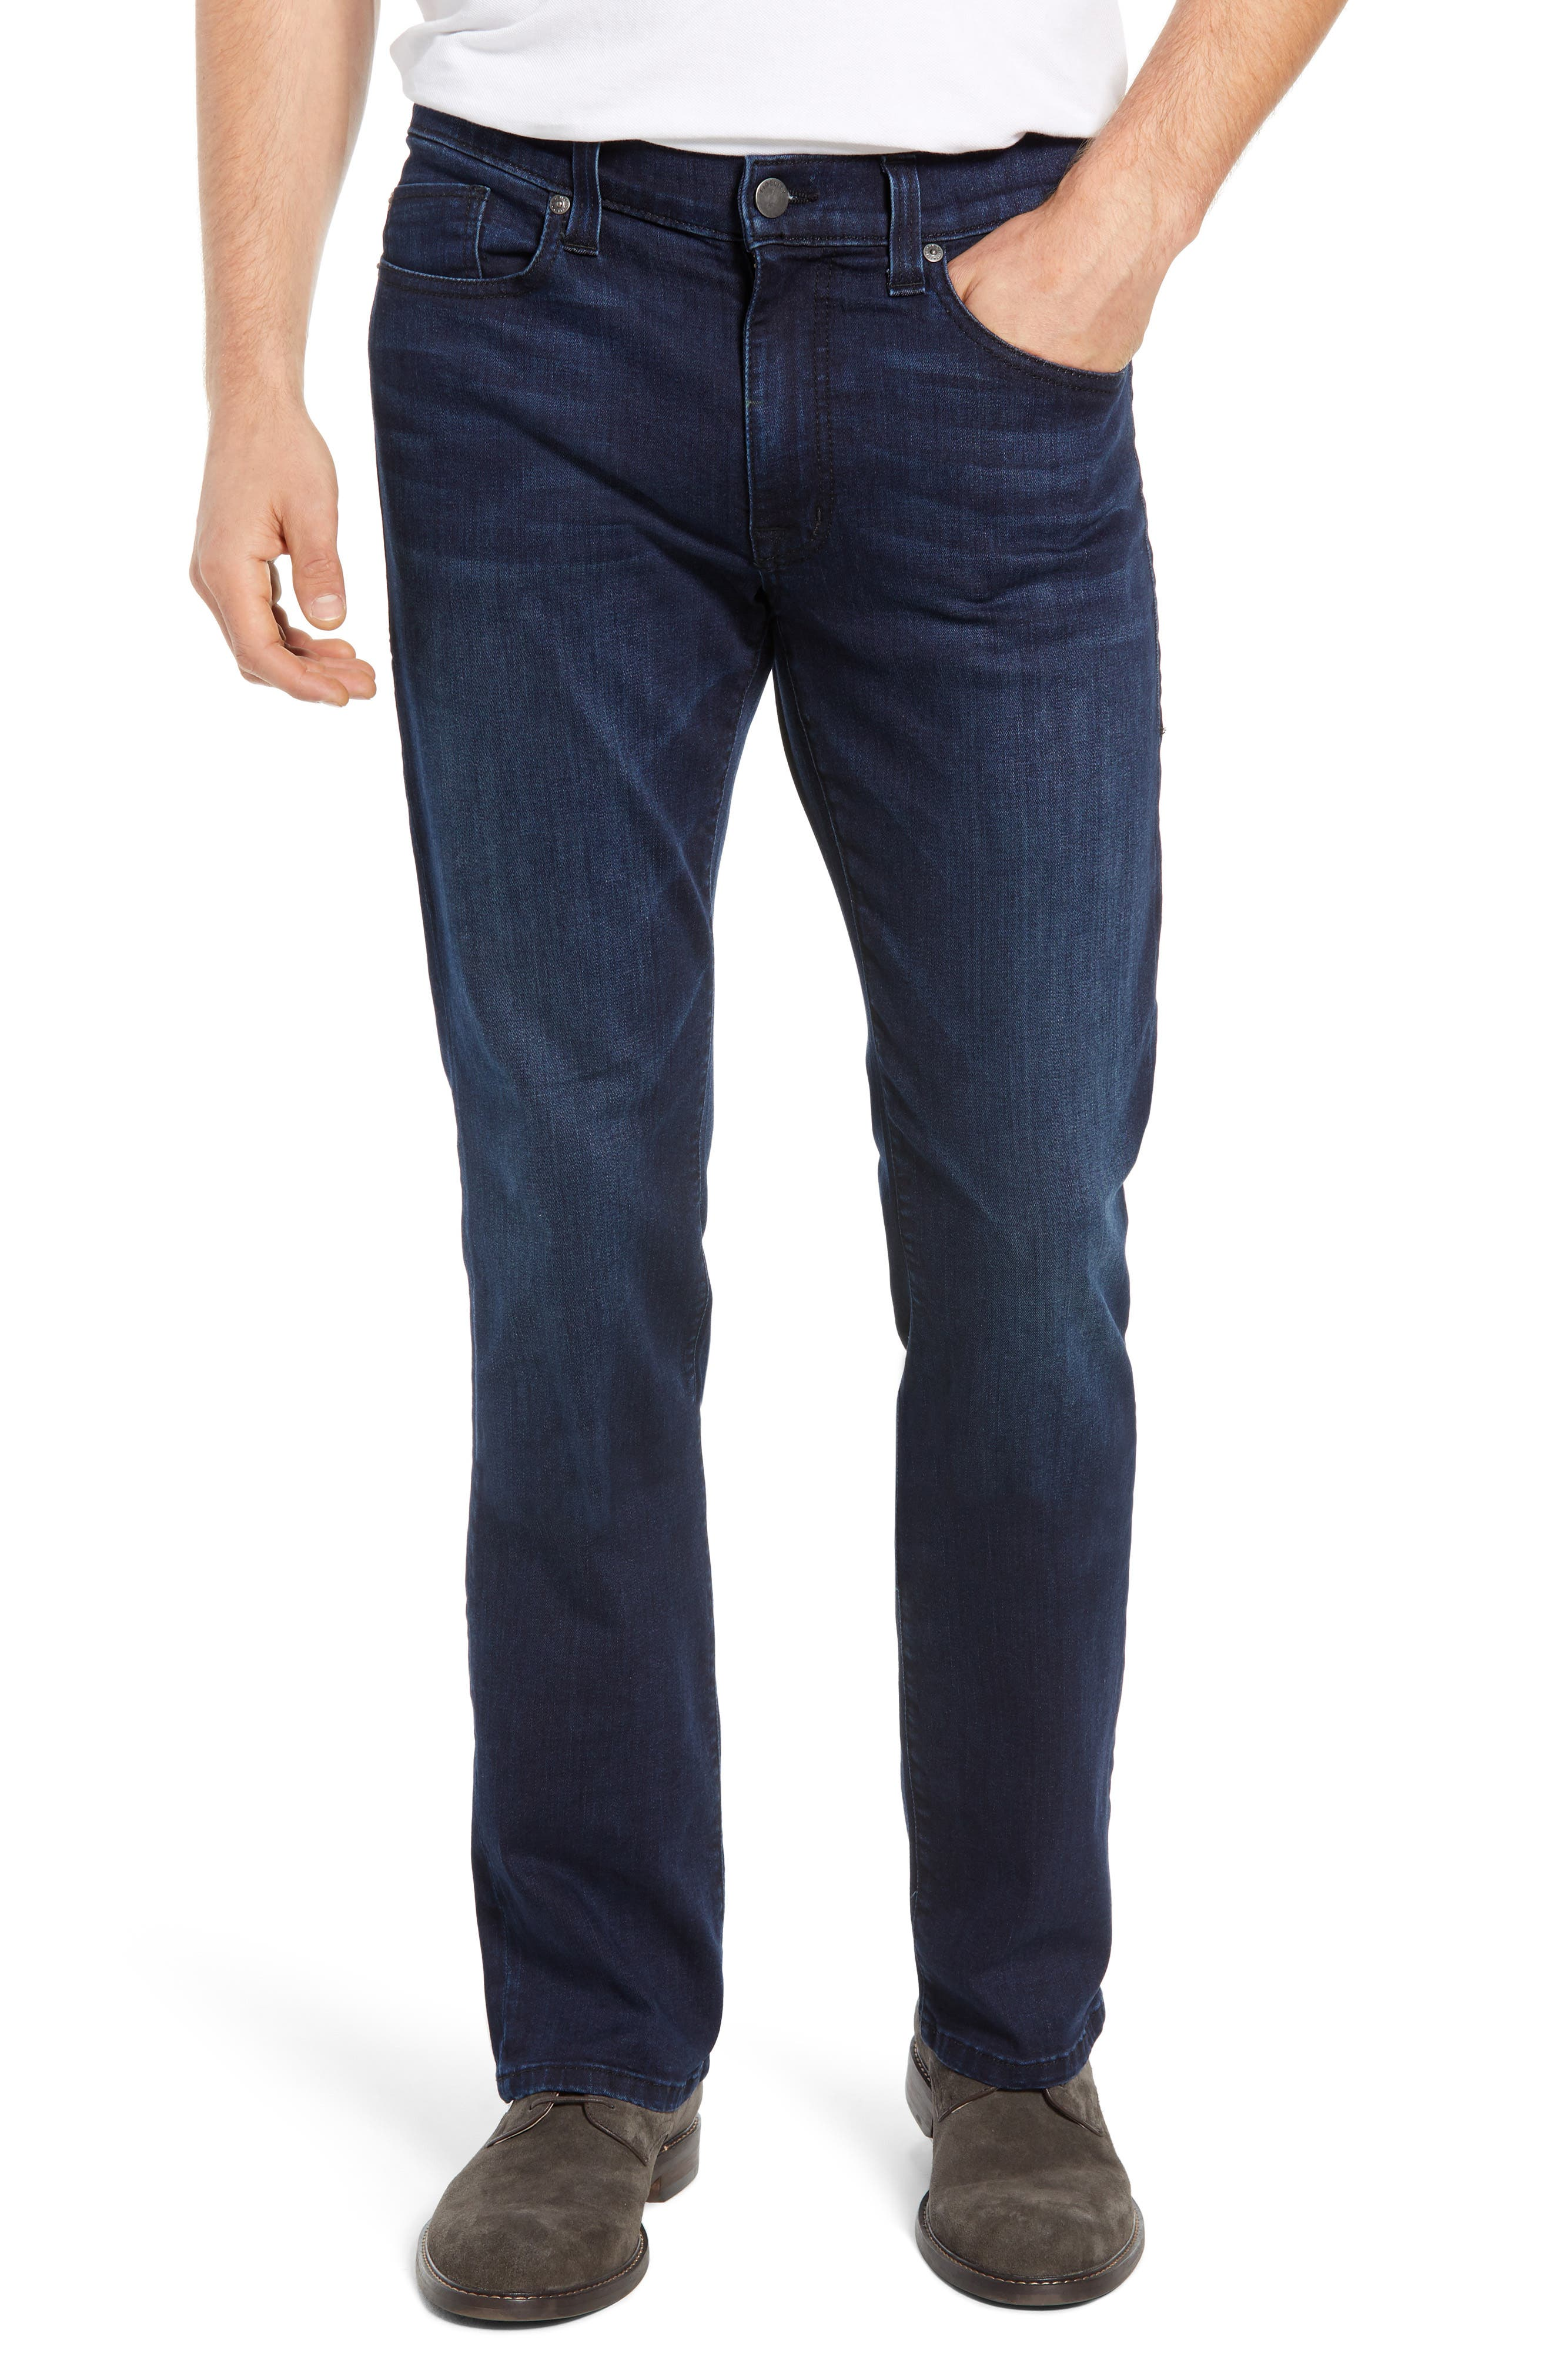 50-11 Relaxed Fit Jeans,                             Main thumbnail 1, color,                             HENDRIX